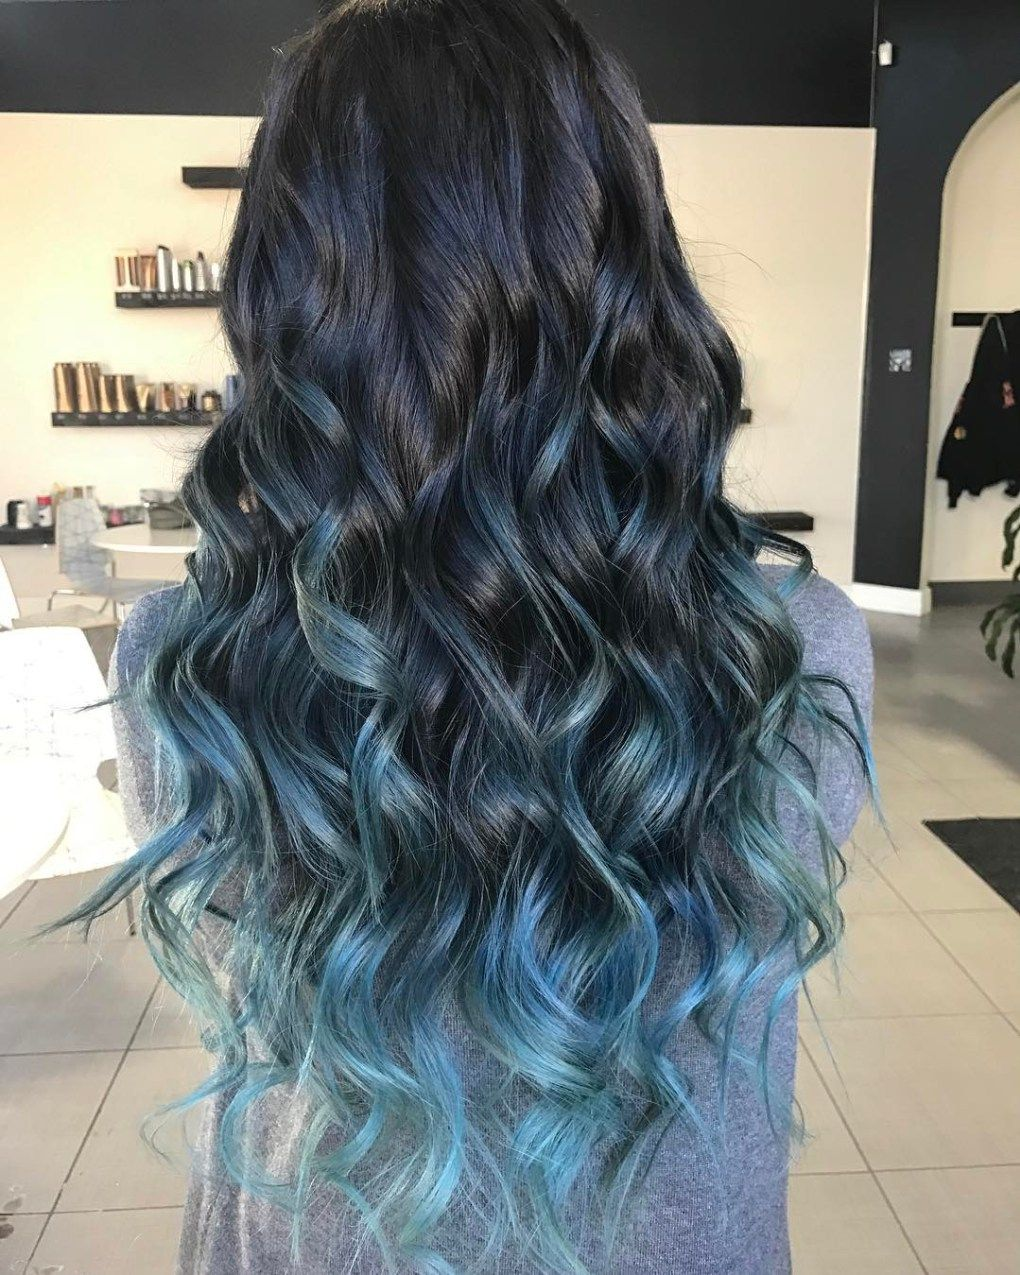 40 Fairy Like Blue Ombre Hairstyles Blue Hair Balayage Black Hair With Highlights Hair Color Blue